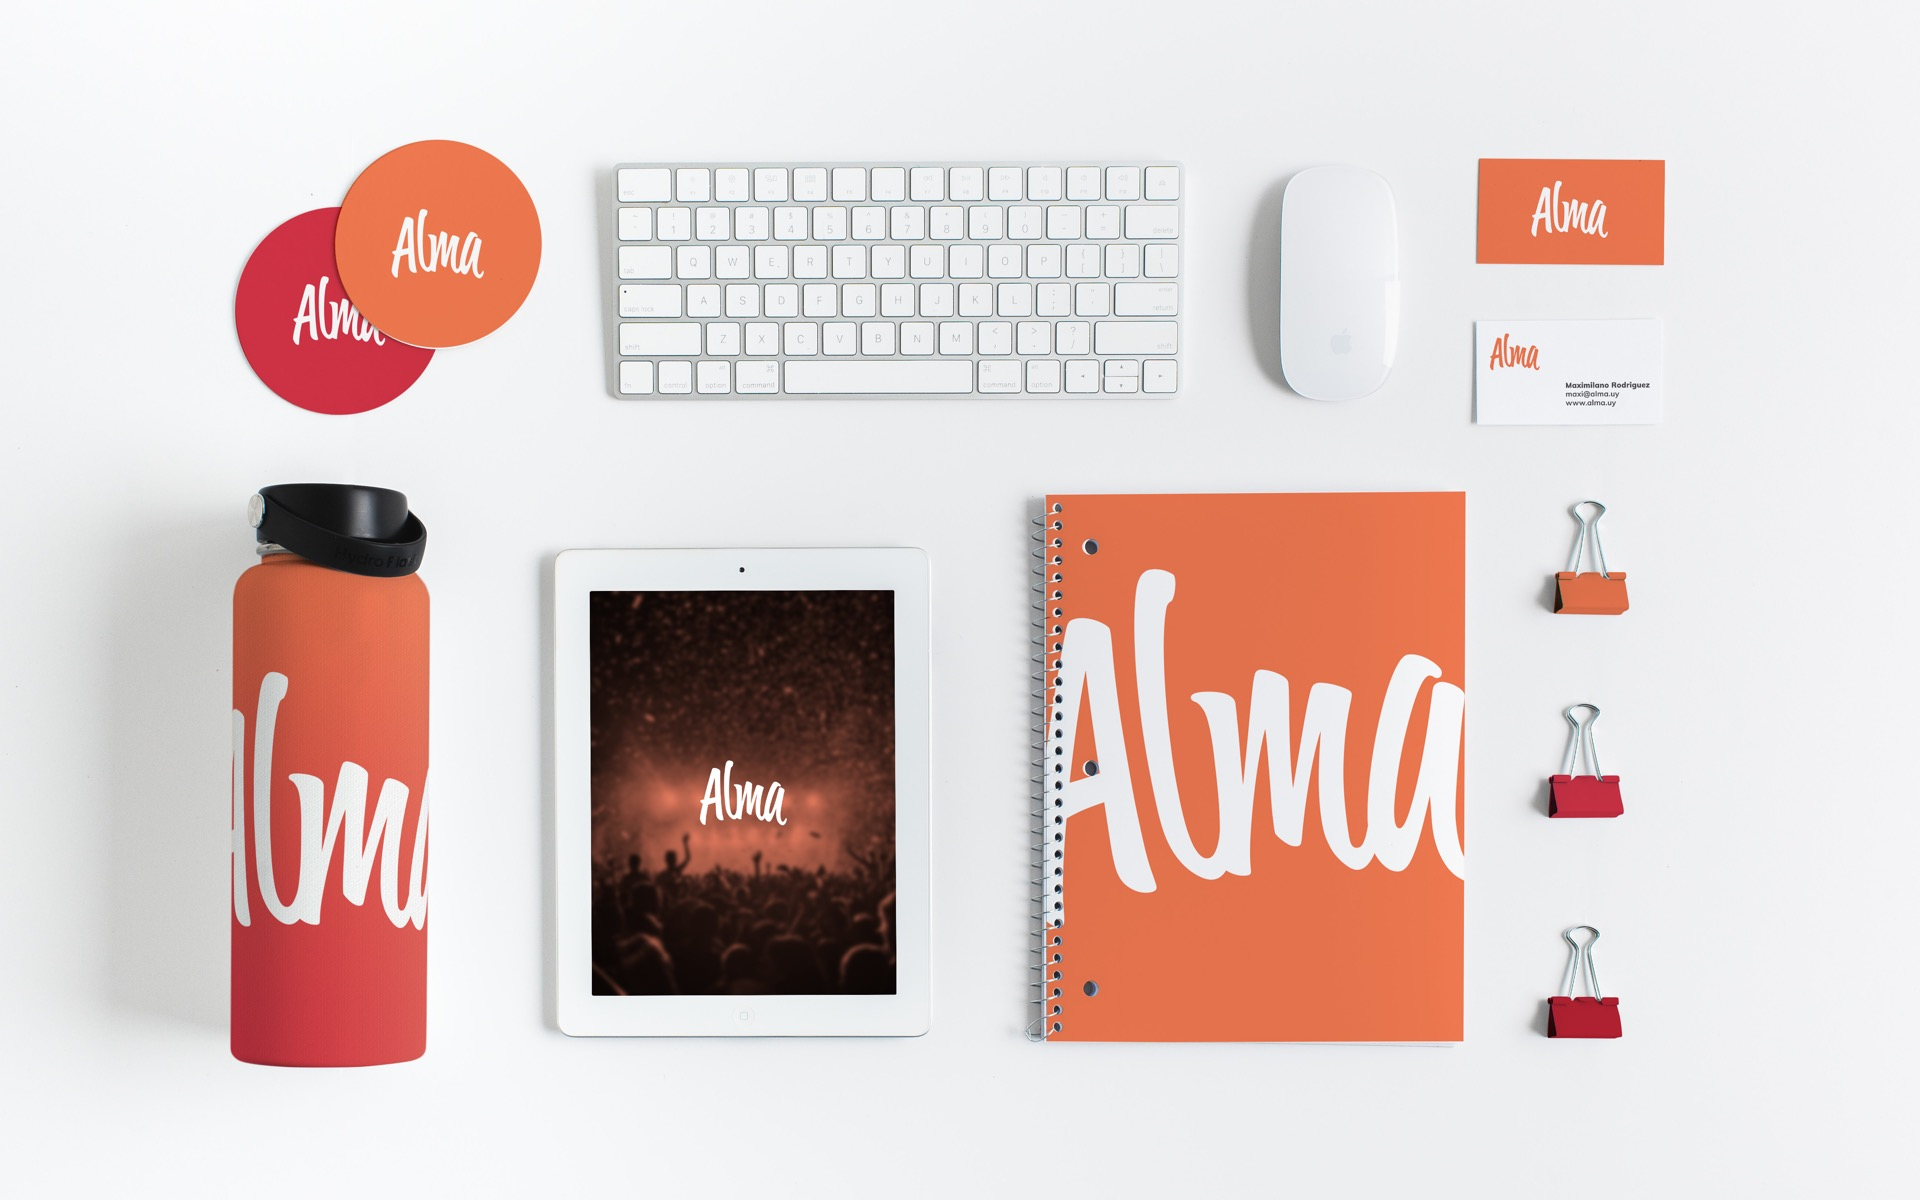 alma-branding-showcase